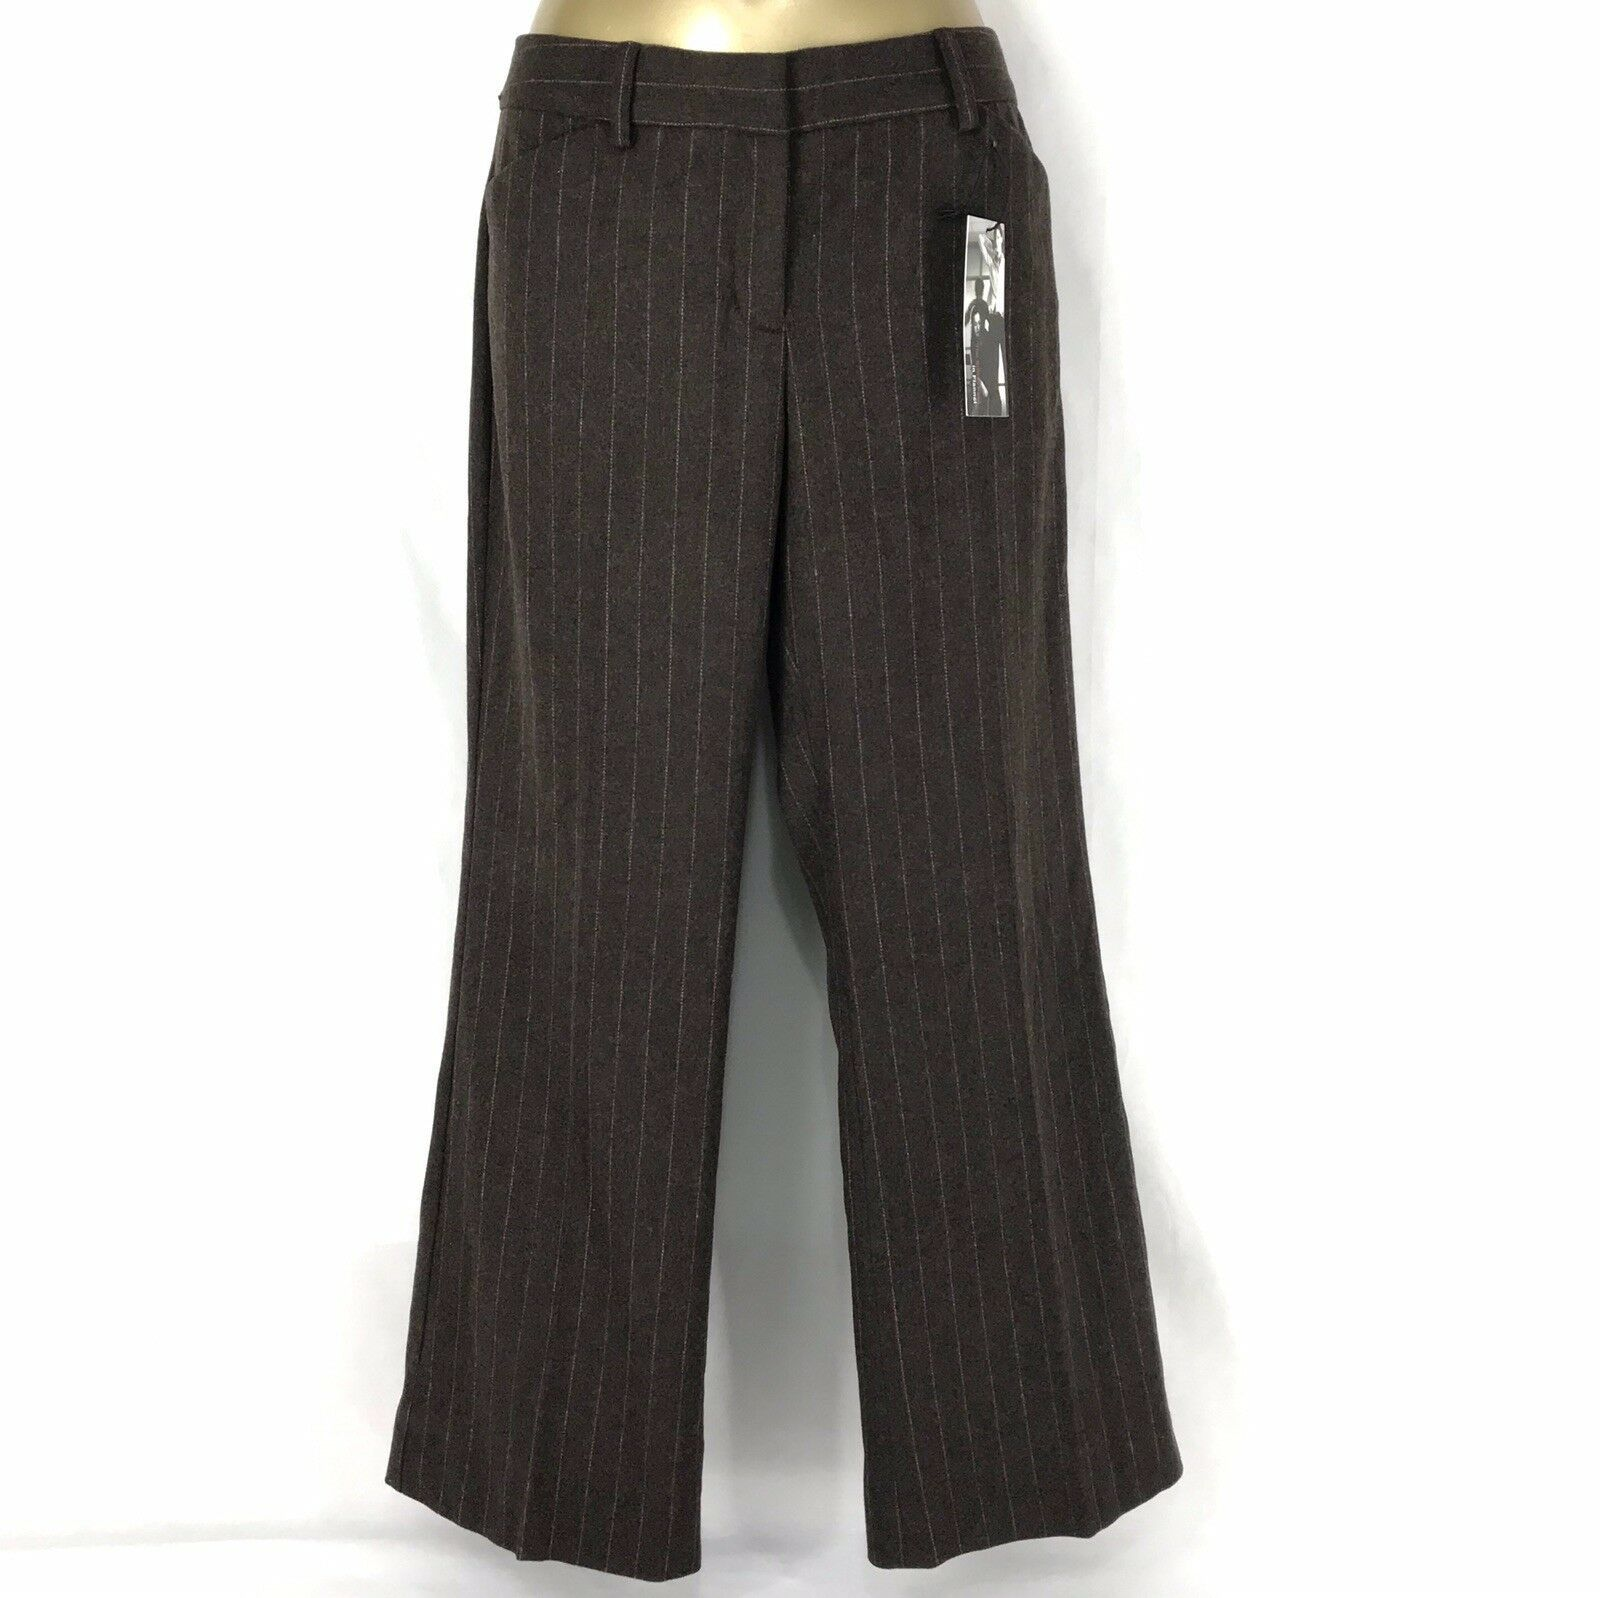 Express Editor Low Rise Flare Brown Pink Pinstripe Wool Pants Womens Size 6 NWT - $30.34